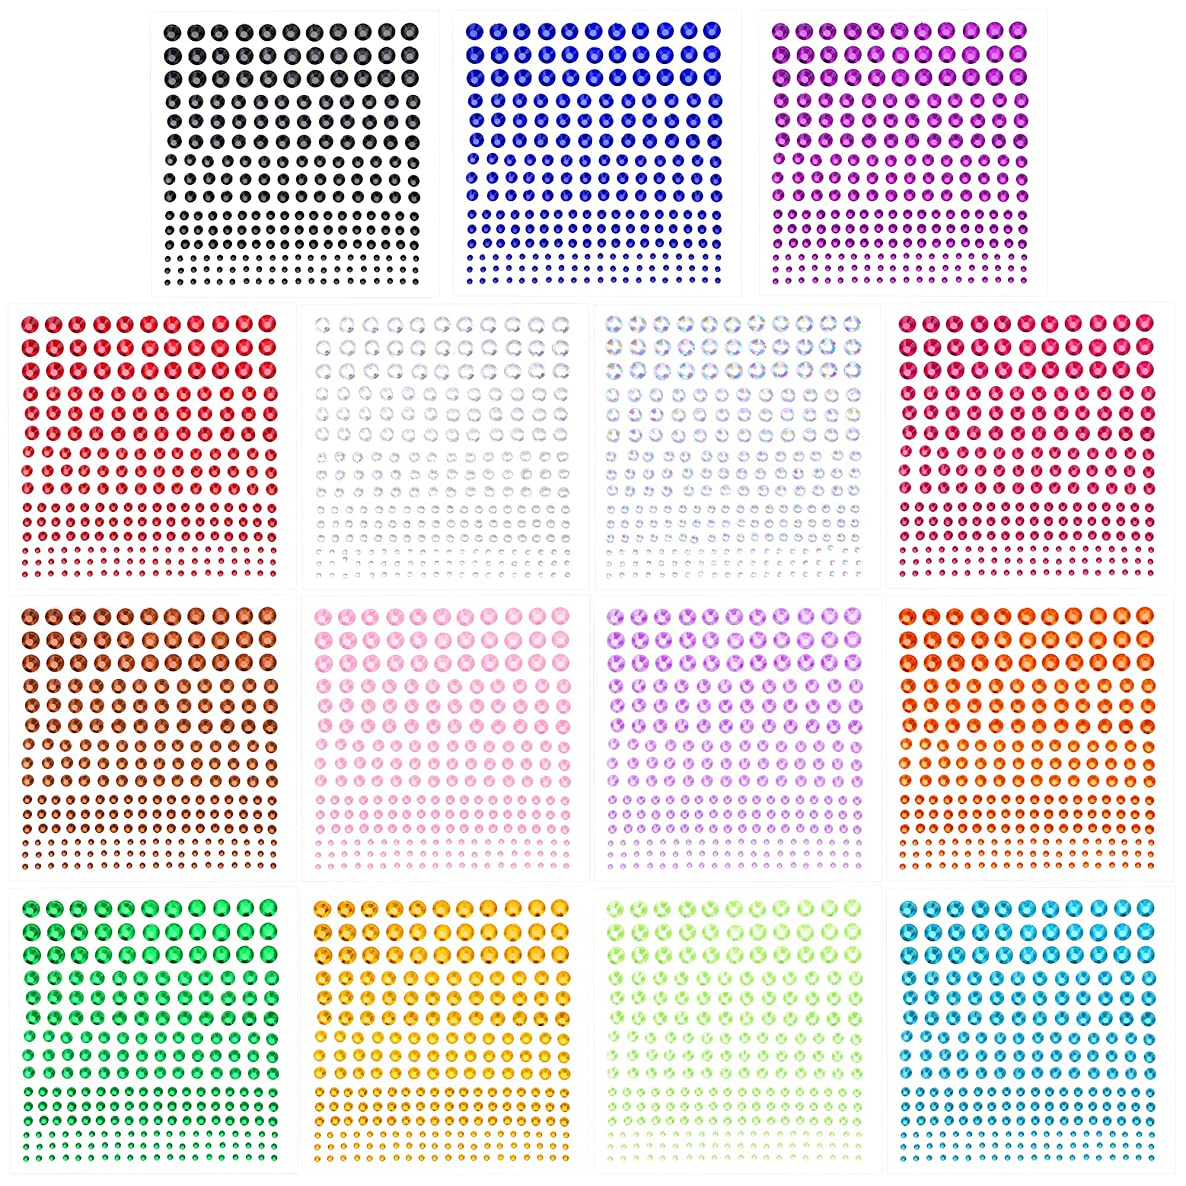 Phogary Self-Adhesive Rhinestone Sticker 3375 Pieces Crystal in 5 Size 15 Colors Bling Craft Jewels Gem Stickers for Crafts, Body, DIY Nails, Festival, Carnival, Makeup